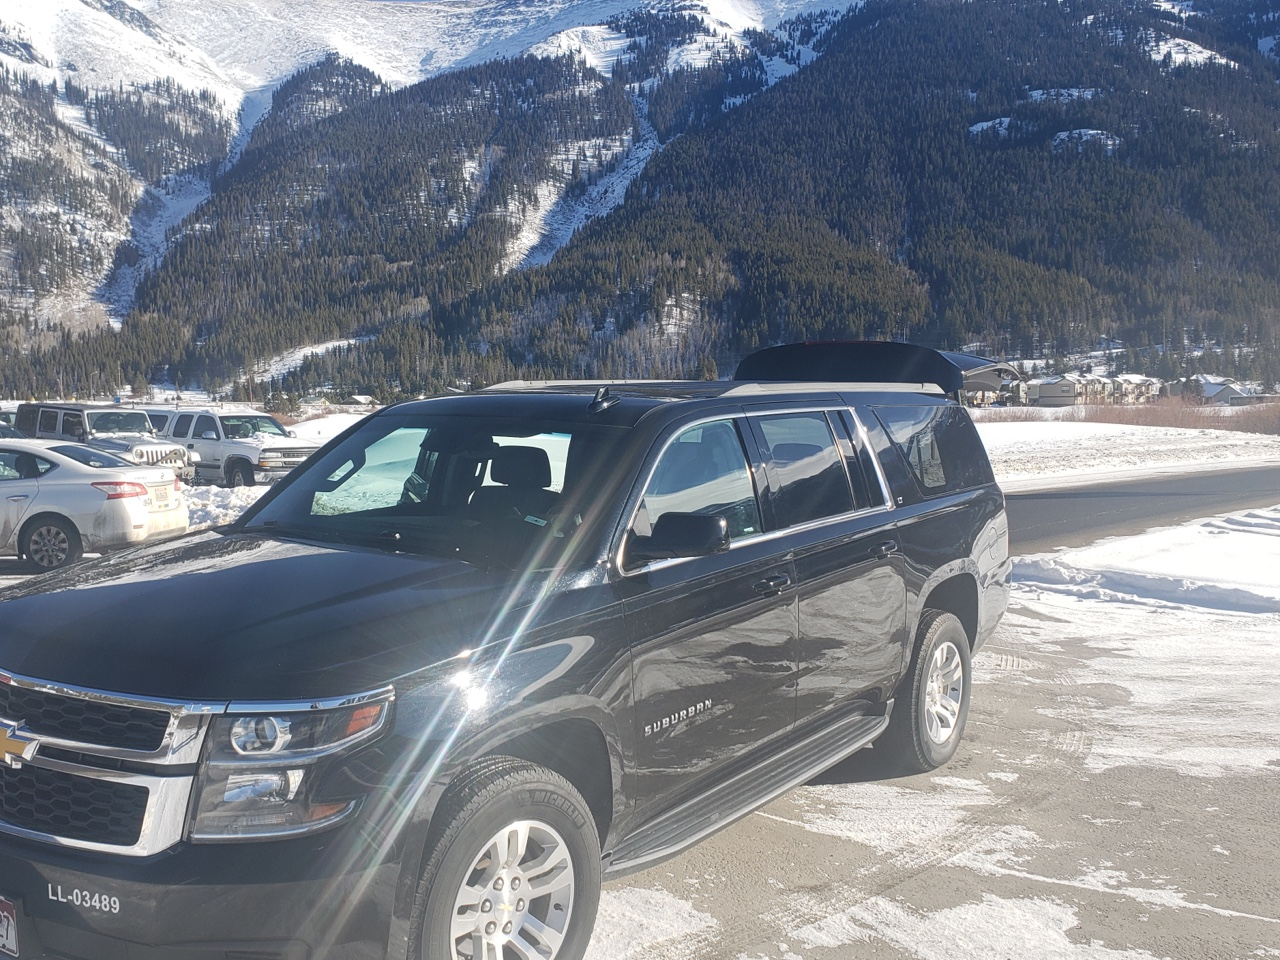 black Suburban SUV at Copper Mountain